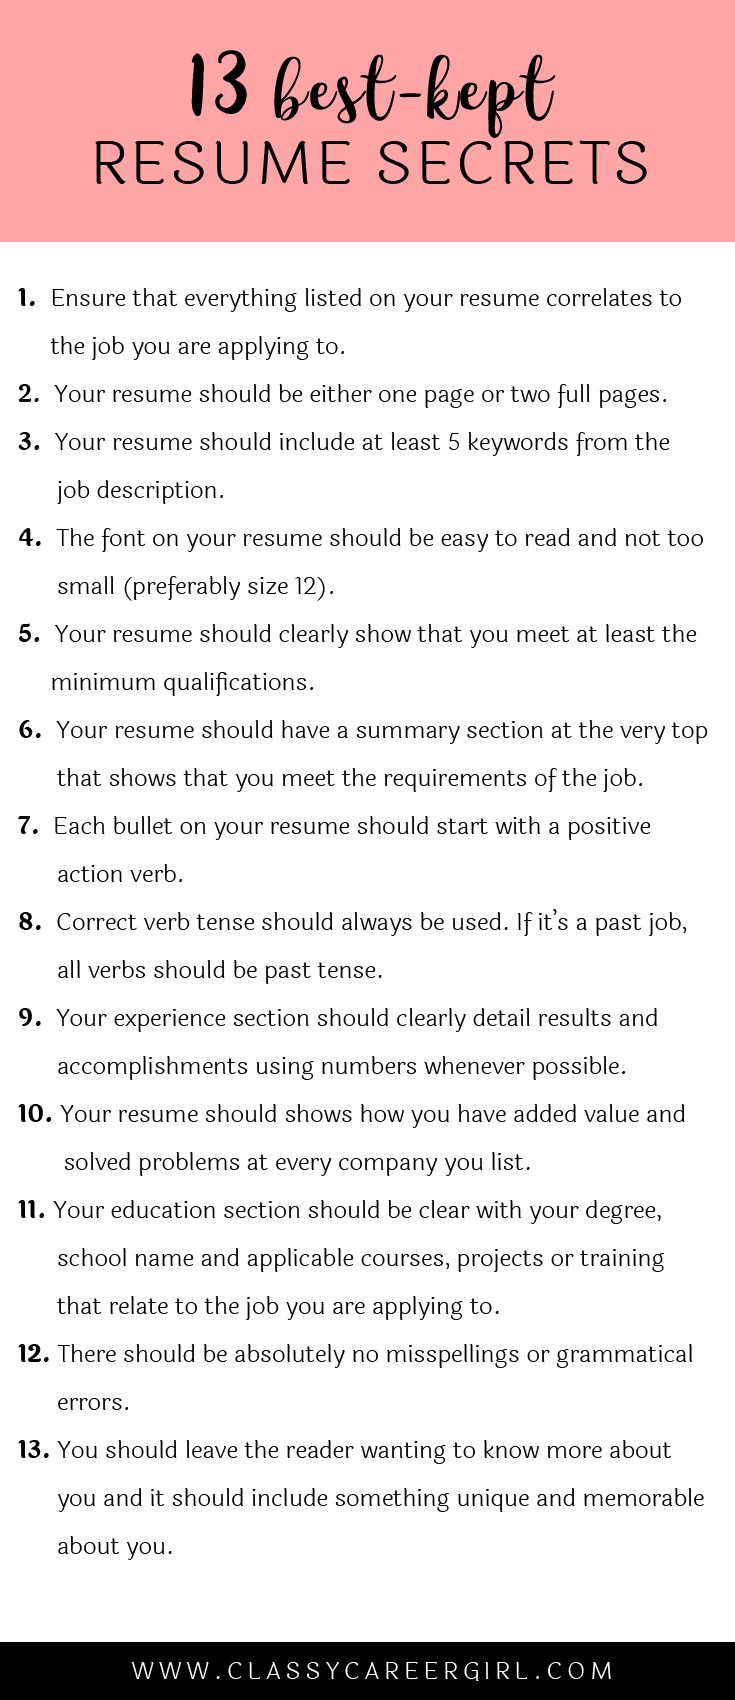 Opposenewapstandardsus  Inspiring  Ideas About Resume On Pinterest  Cv Format Resume Cv And  With Lovely Some Hiring Managers Will Toss Your Resume Out If You Dont Know These  With Beauteous Youth Ministry Resume Also Do Resumes Need References In Addition Make My Resume Free And Court Reporter Resume As Well As Production Planner Resume Additionally Result Oriented Resume From Pinterestcom With Opposenewapstandardsus  Lovely  Ideas About Resume On Pinterest  Cv Format Resume Cv And  With Beauteous Some Hiring Managers Will Toss Your Resume Out If You Dont Know These  And Inspiring Youth Ministry Resume Also Do Resumes Need References In Addition Make My Resume Free From Pinterestcom